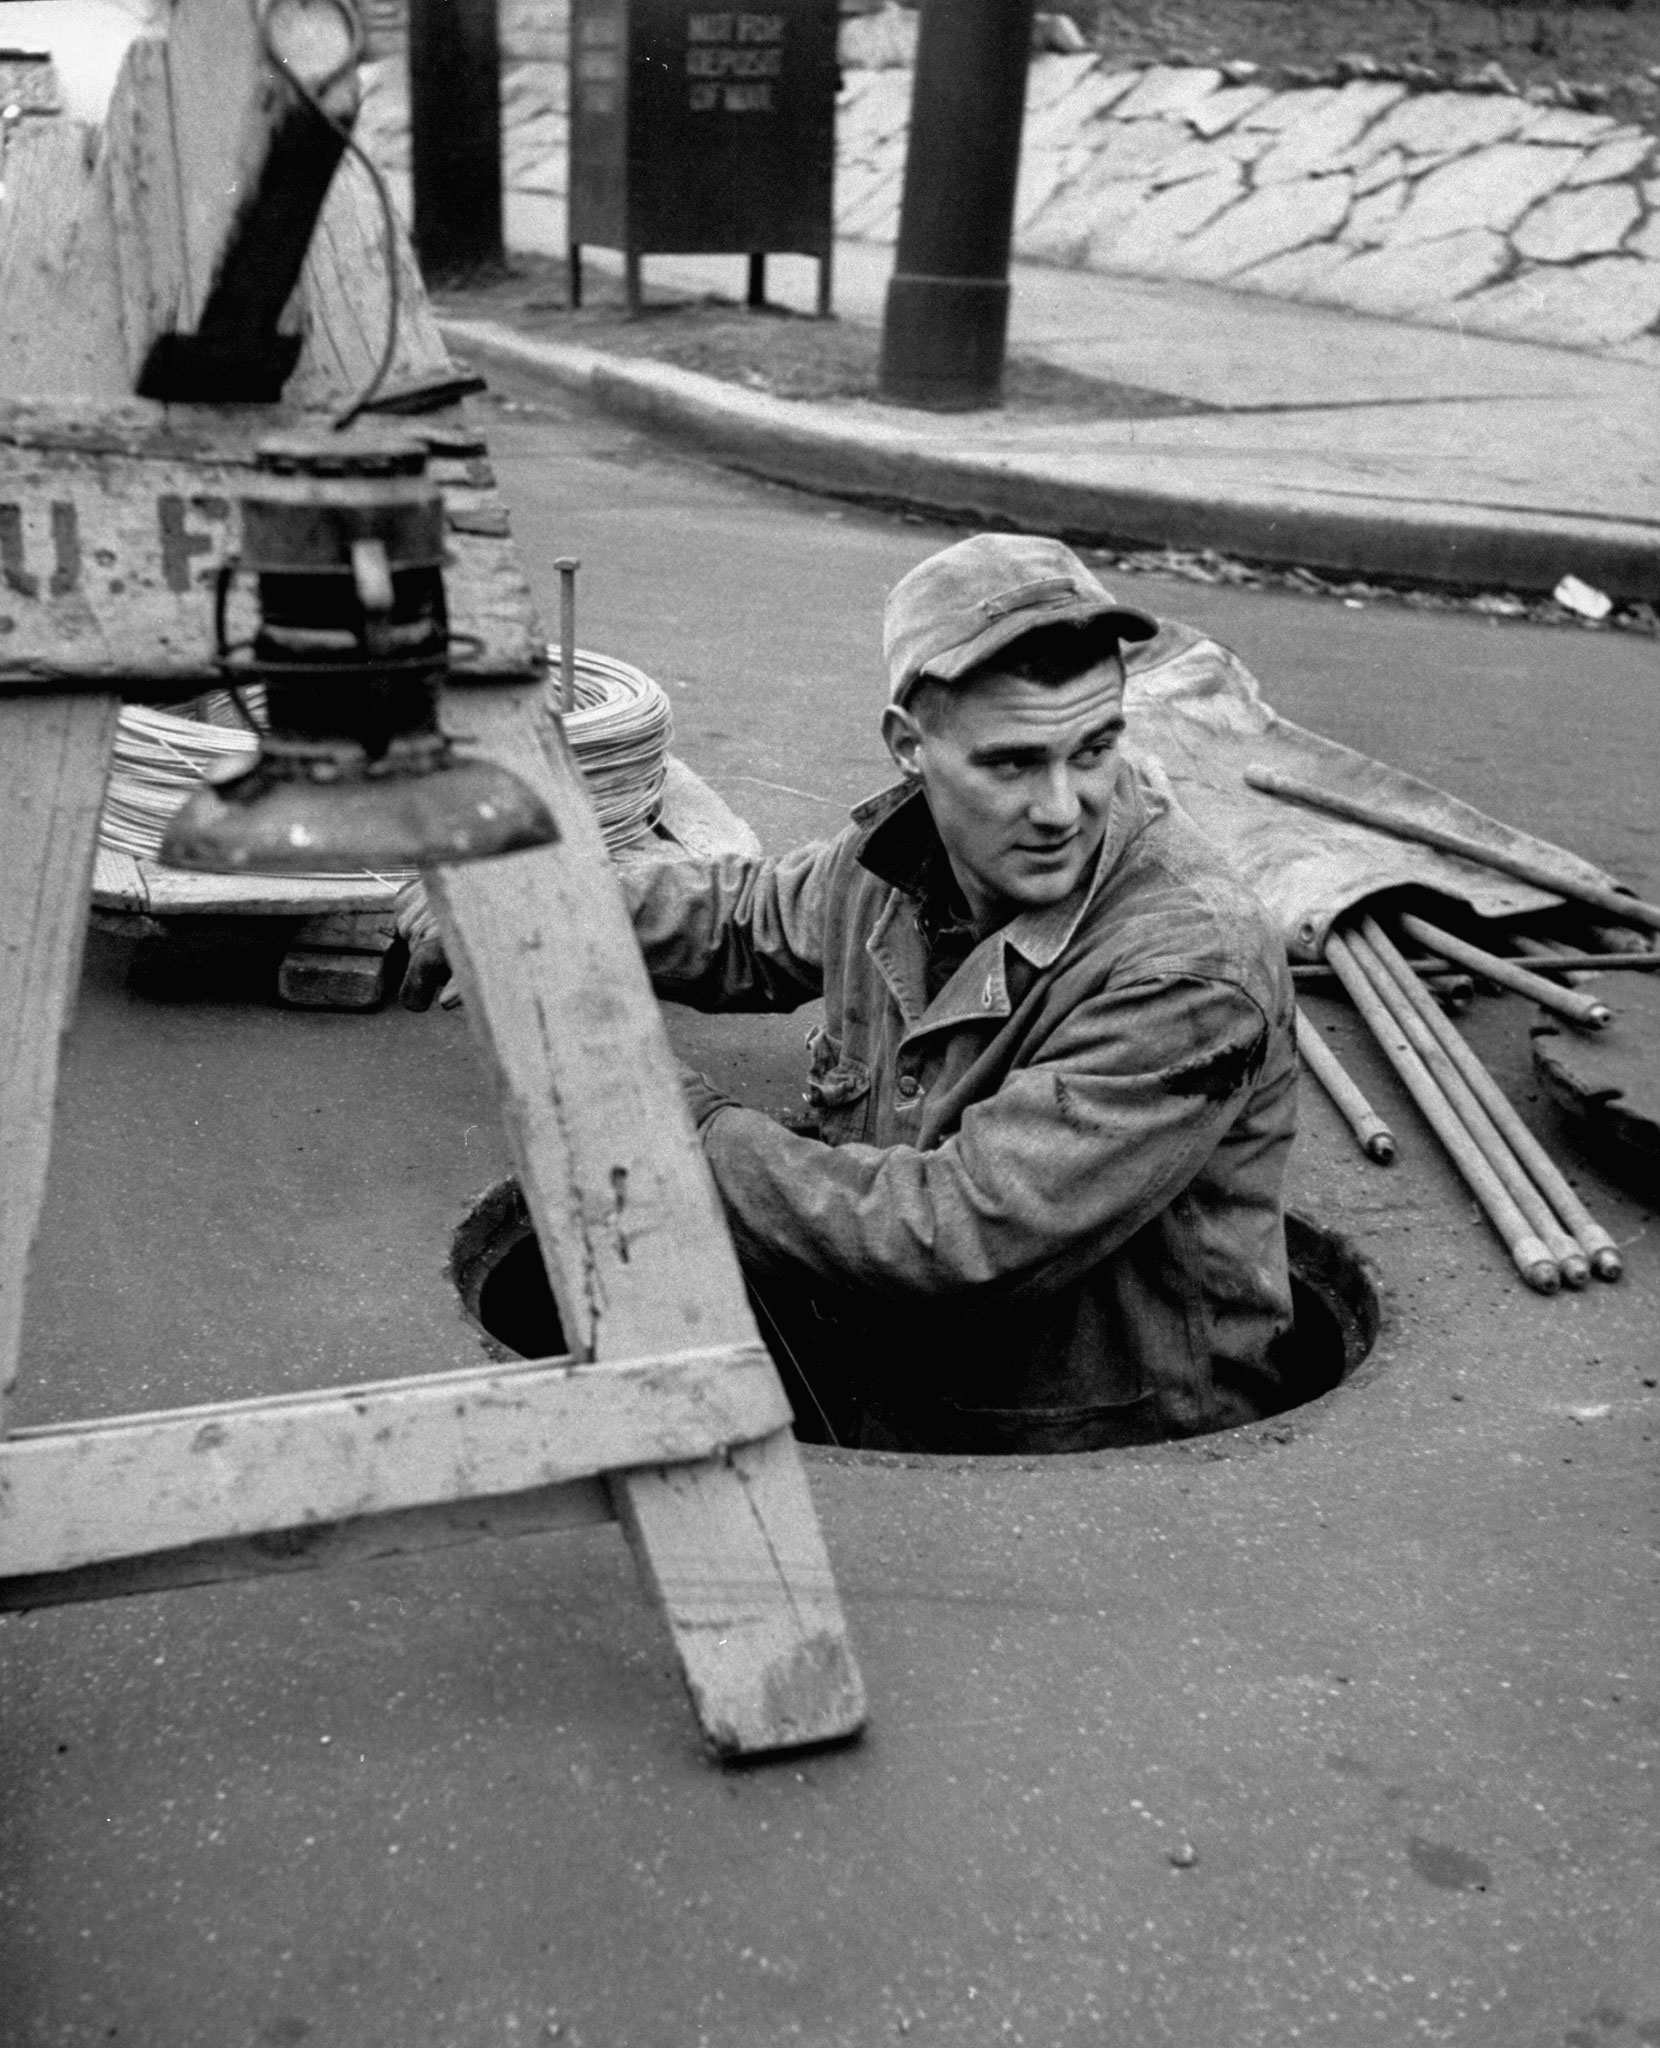 <b>Caption from LIFE.</b> Utility worker, Jack Krueger, 19, who finished high school in 1952, earns $2.24 an hour.